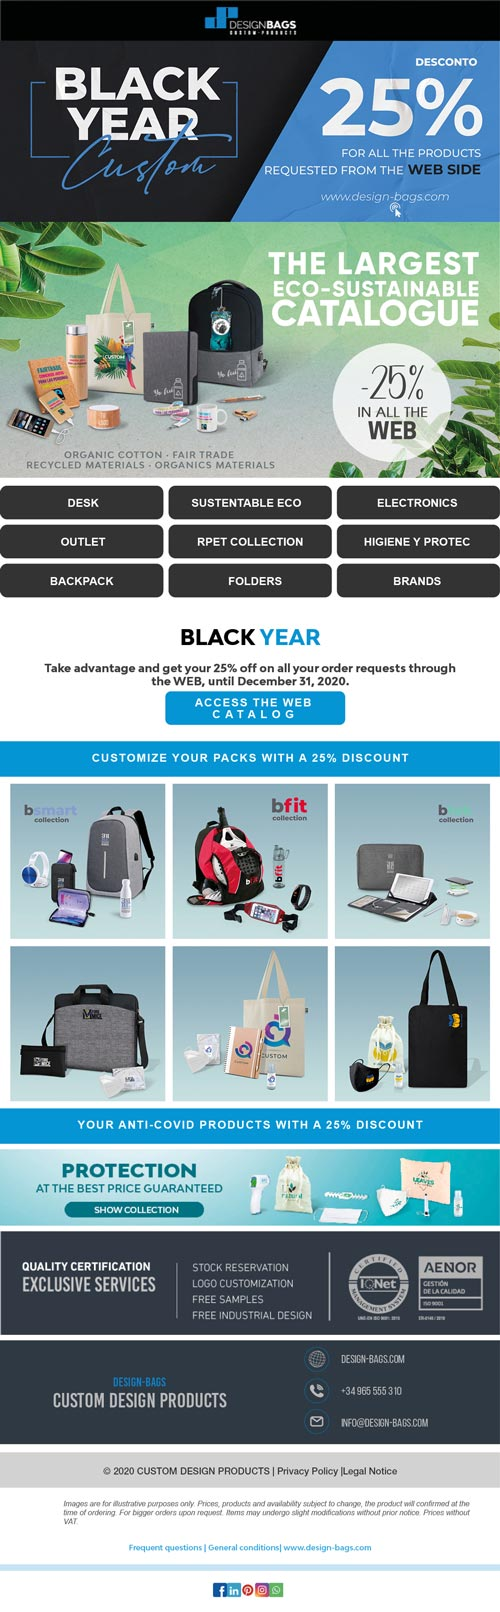 25% discount on your promotional items requested by the web